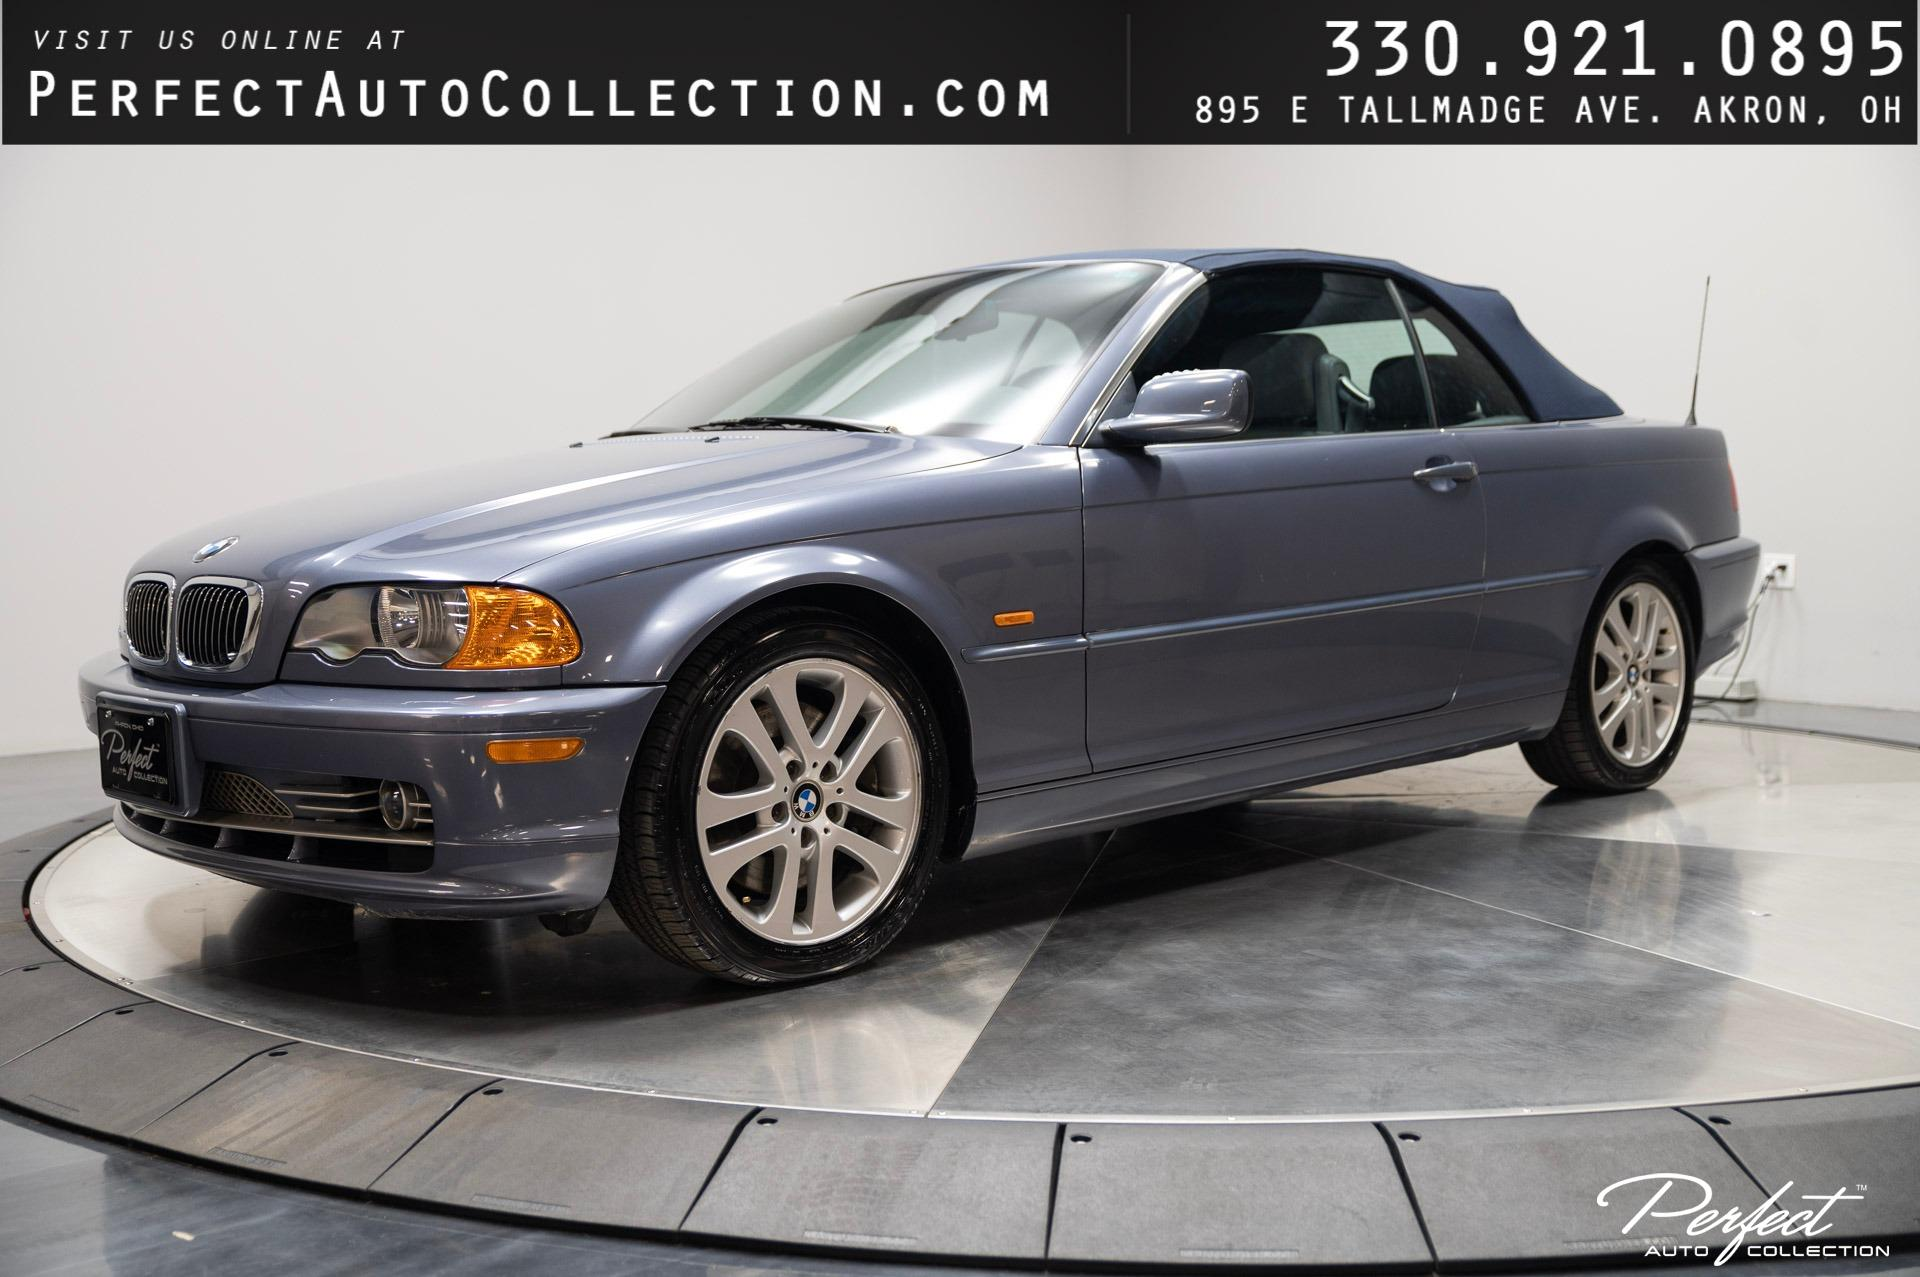 Used 2002 BMW 3 Series 330Ci for sale $7,995 at Perfect Auto Collection in Akron OH 44310 1